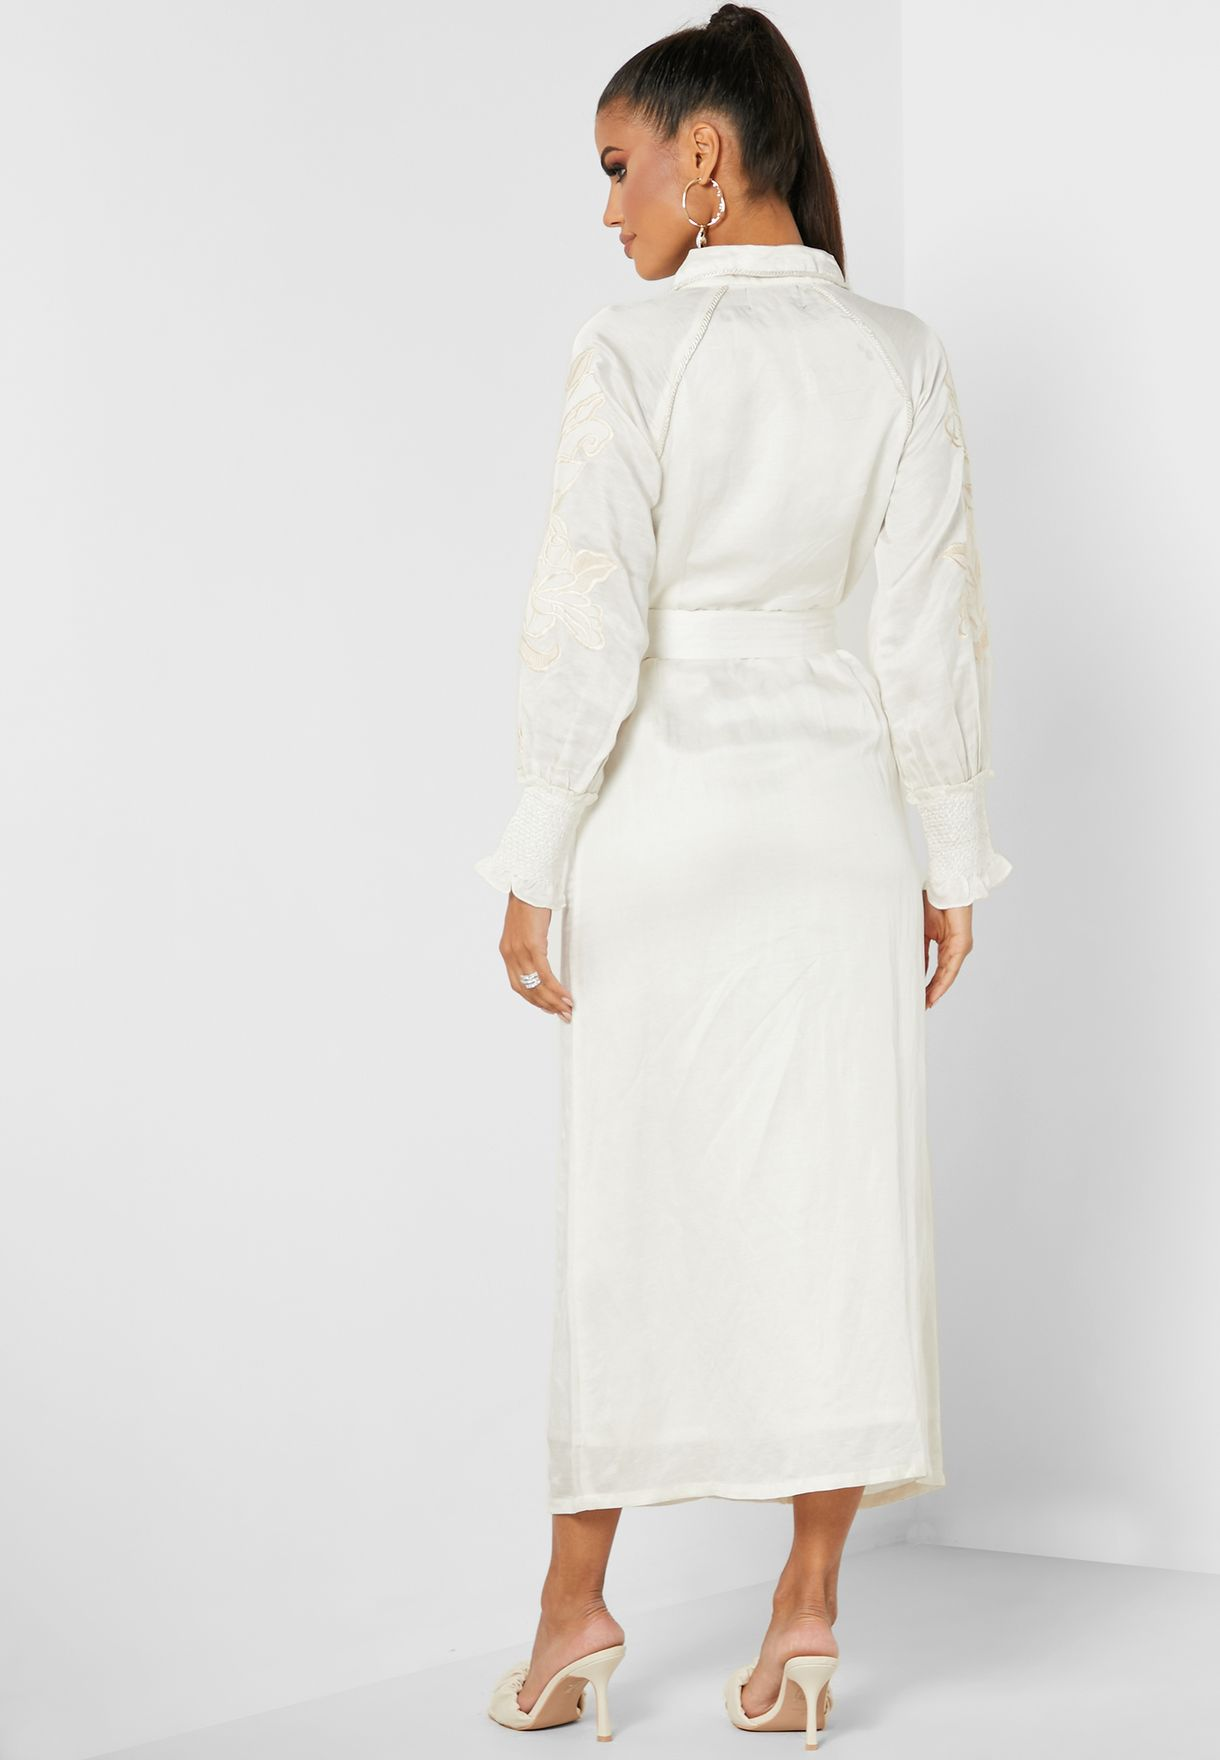 Embroidered Belted Collar Dress